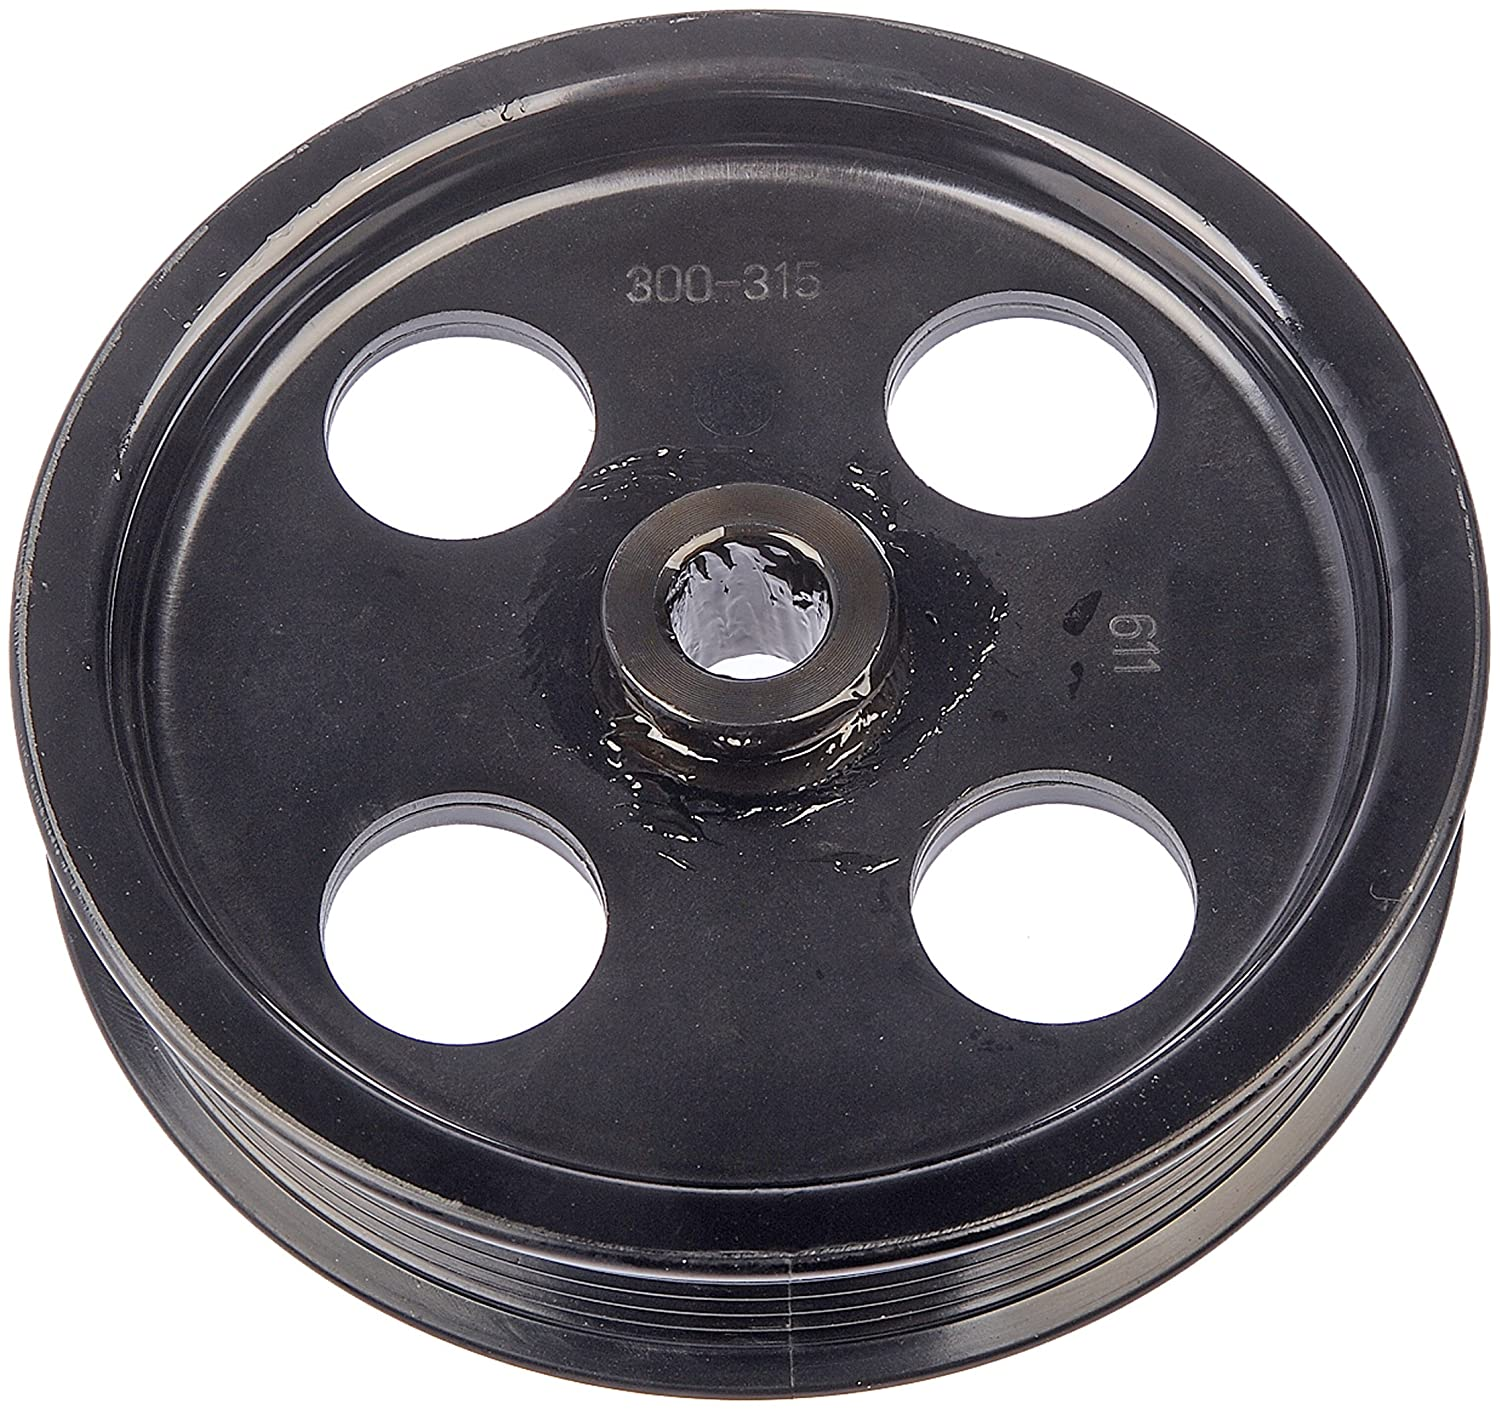 Dorman 300-315 Power Steering Pulley for Chrysler/Dodge Dorman - OE Solutions DOR300-315